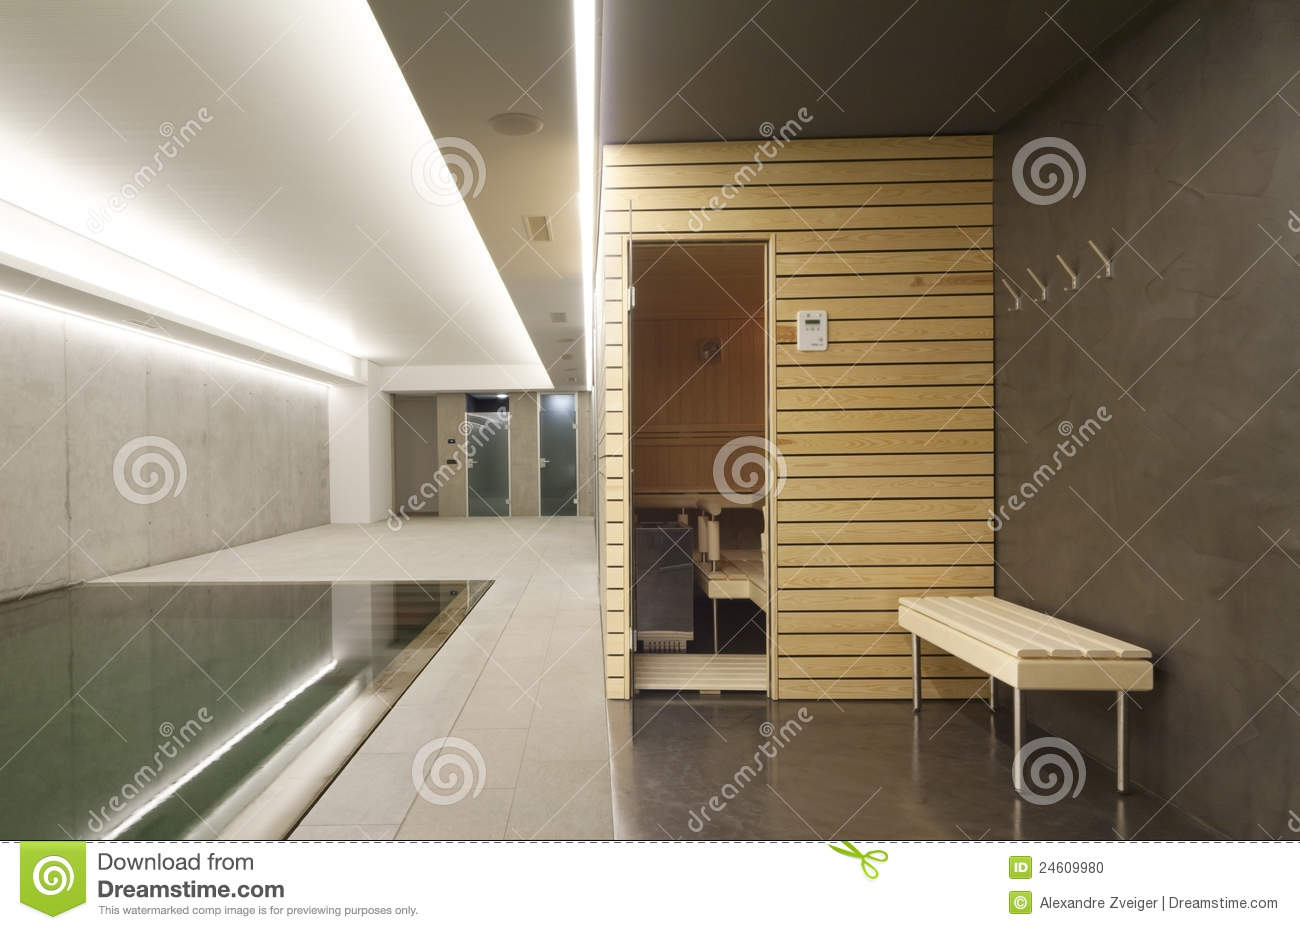 piscine d 39 int rieur avec le sauna photo stock image 24609980. Black Bedroom Furniture Sets. Home Design Ideas